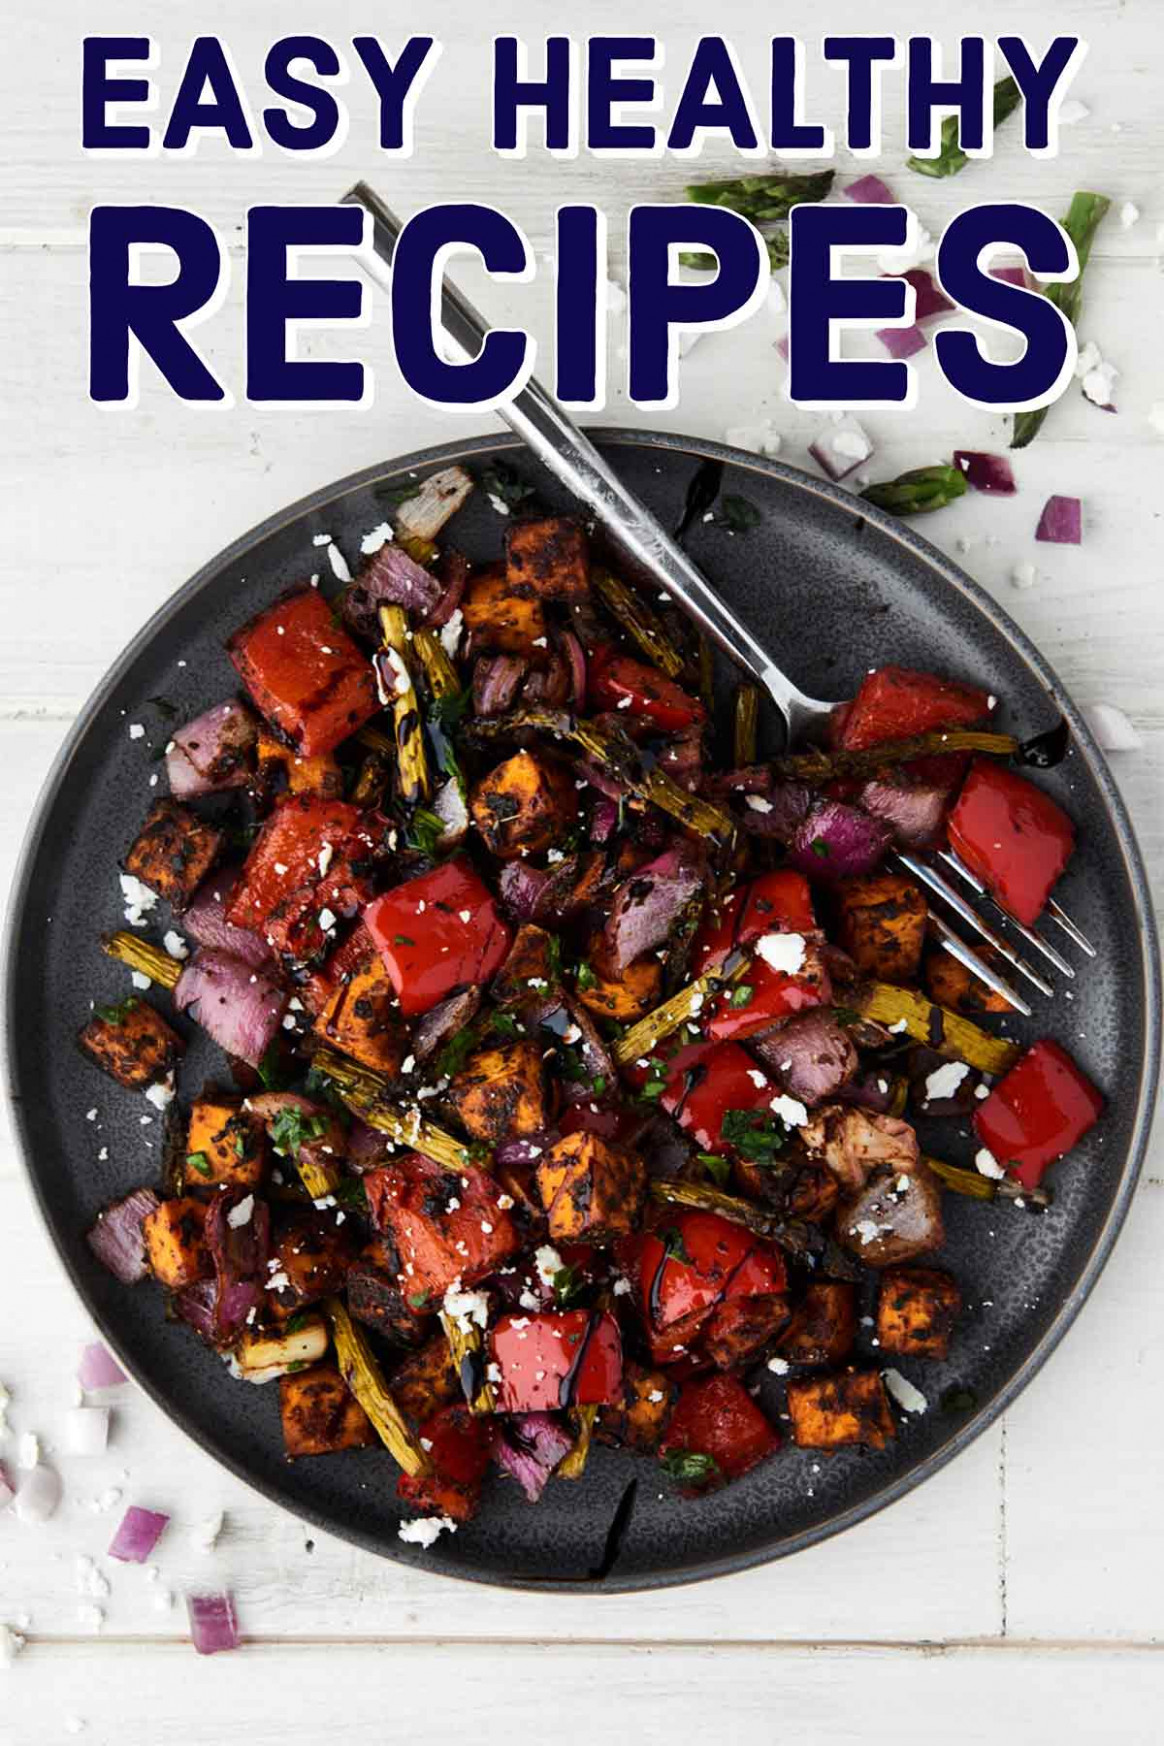 Easy Healthy Recipes 15 - Show Me The Yummy - Recipes That Can Be Made Vegetarian